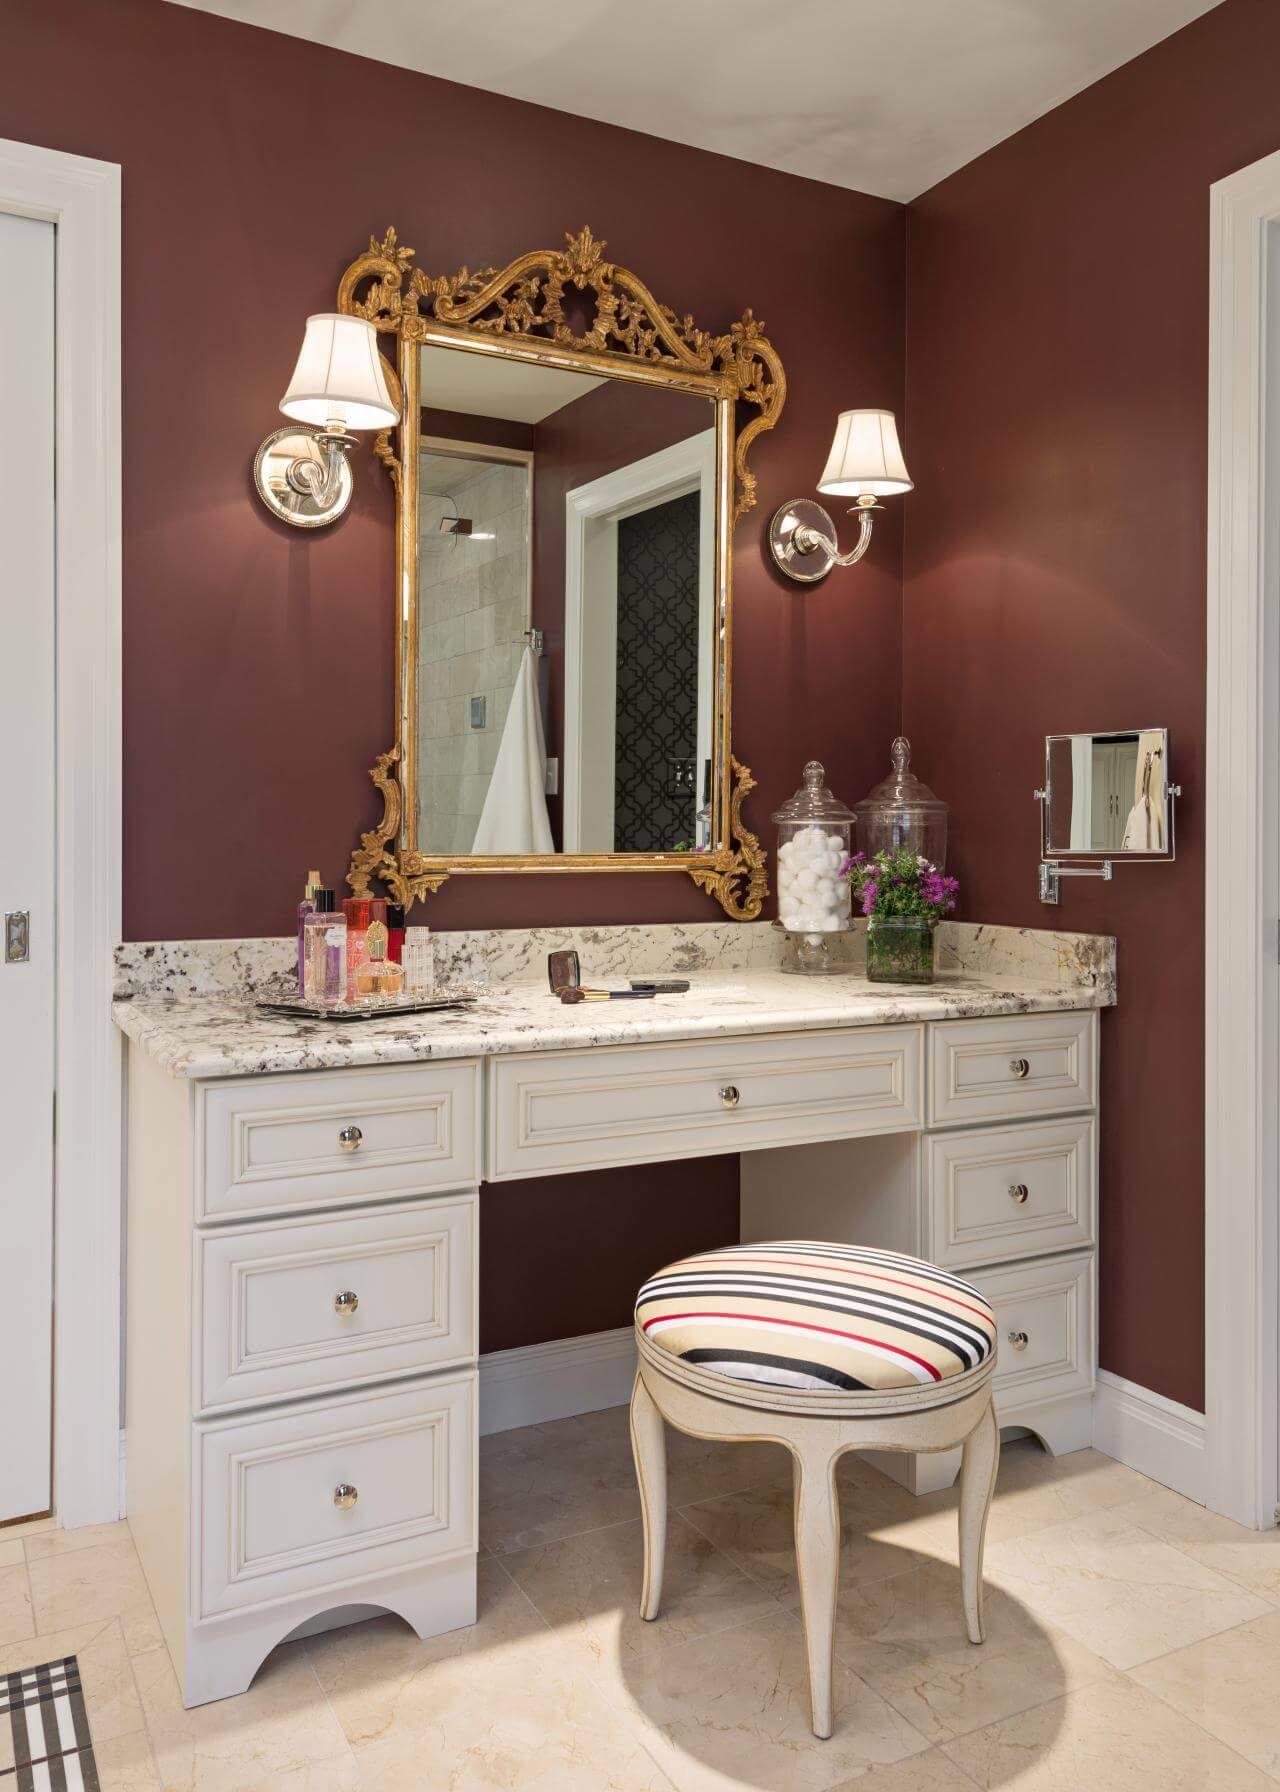 MarbleTopped Vanity with BaroqueStyle Mirror Vanity